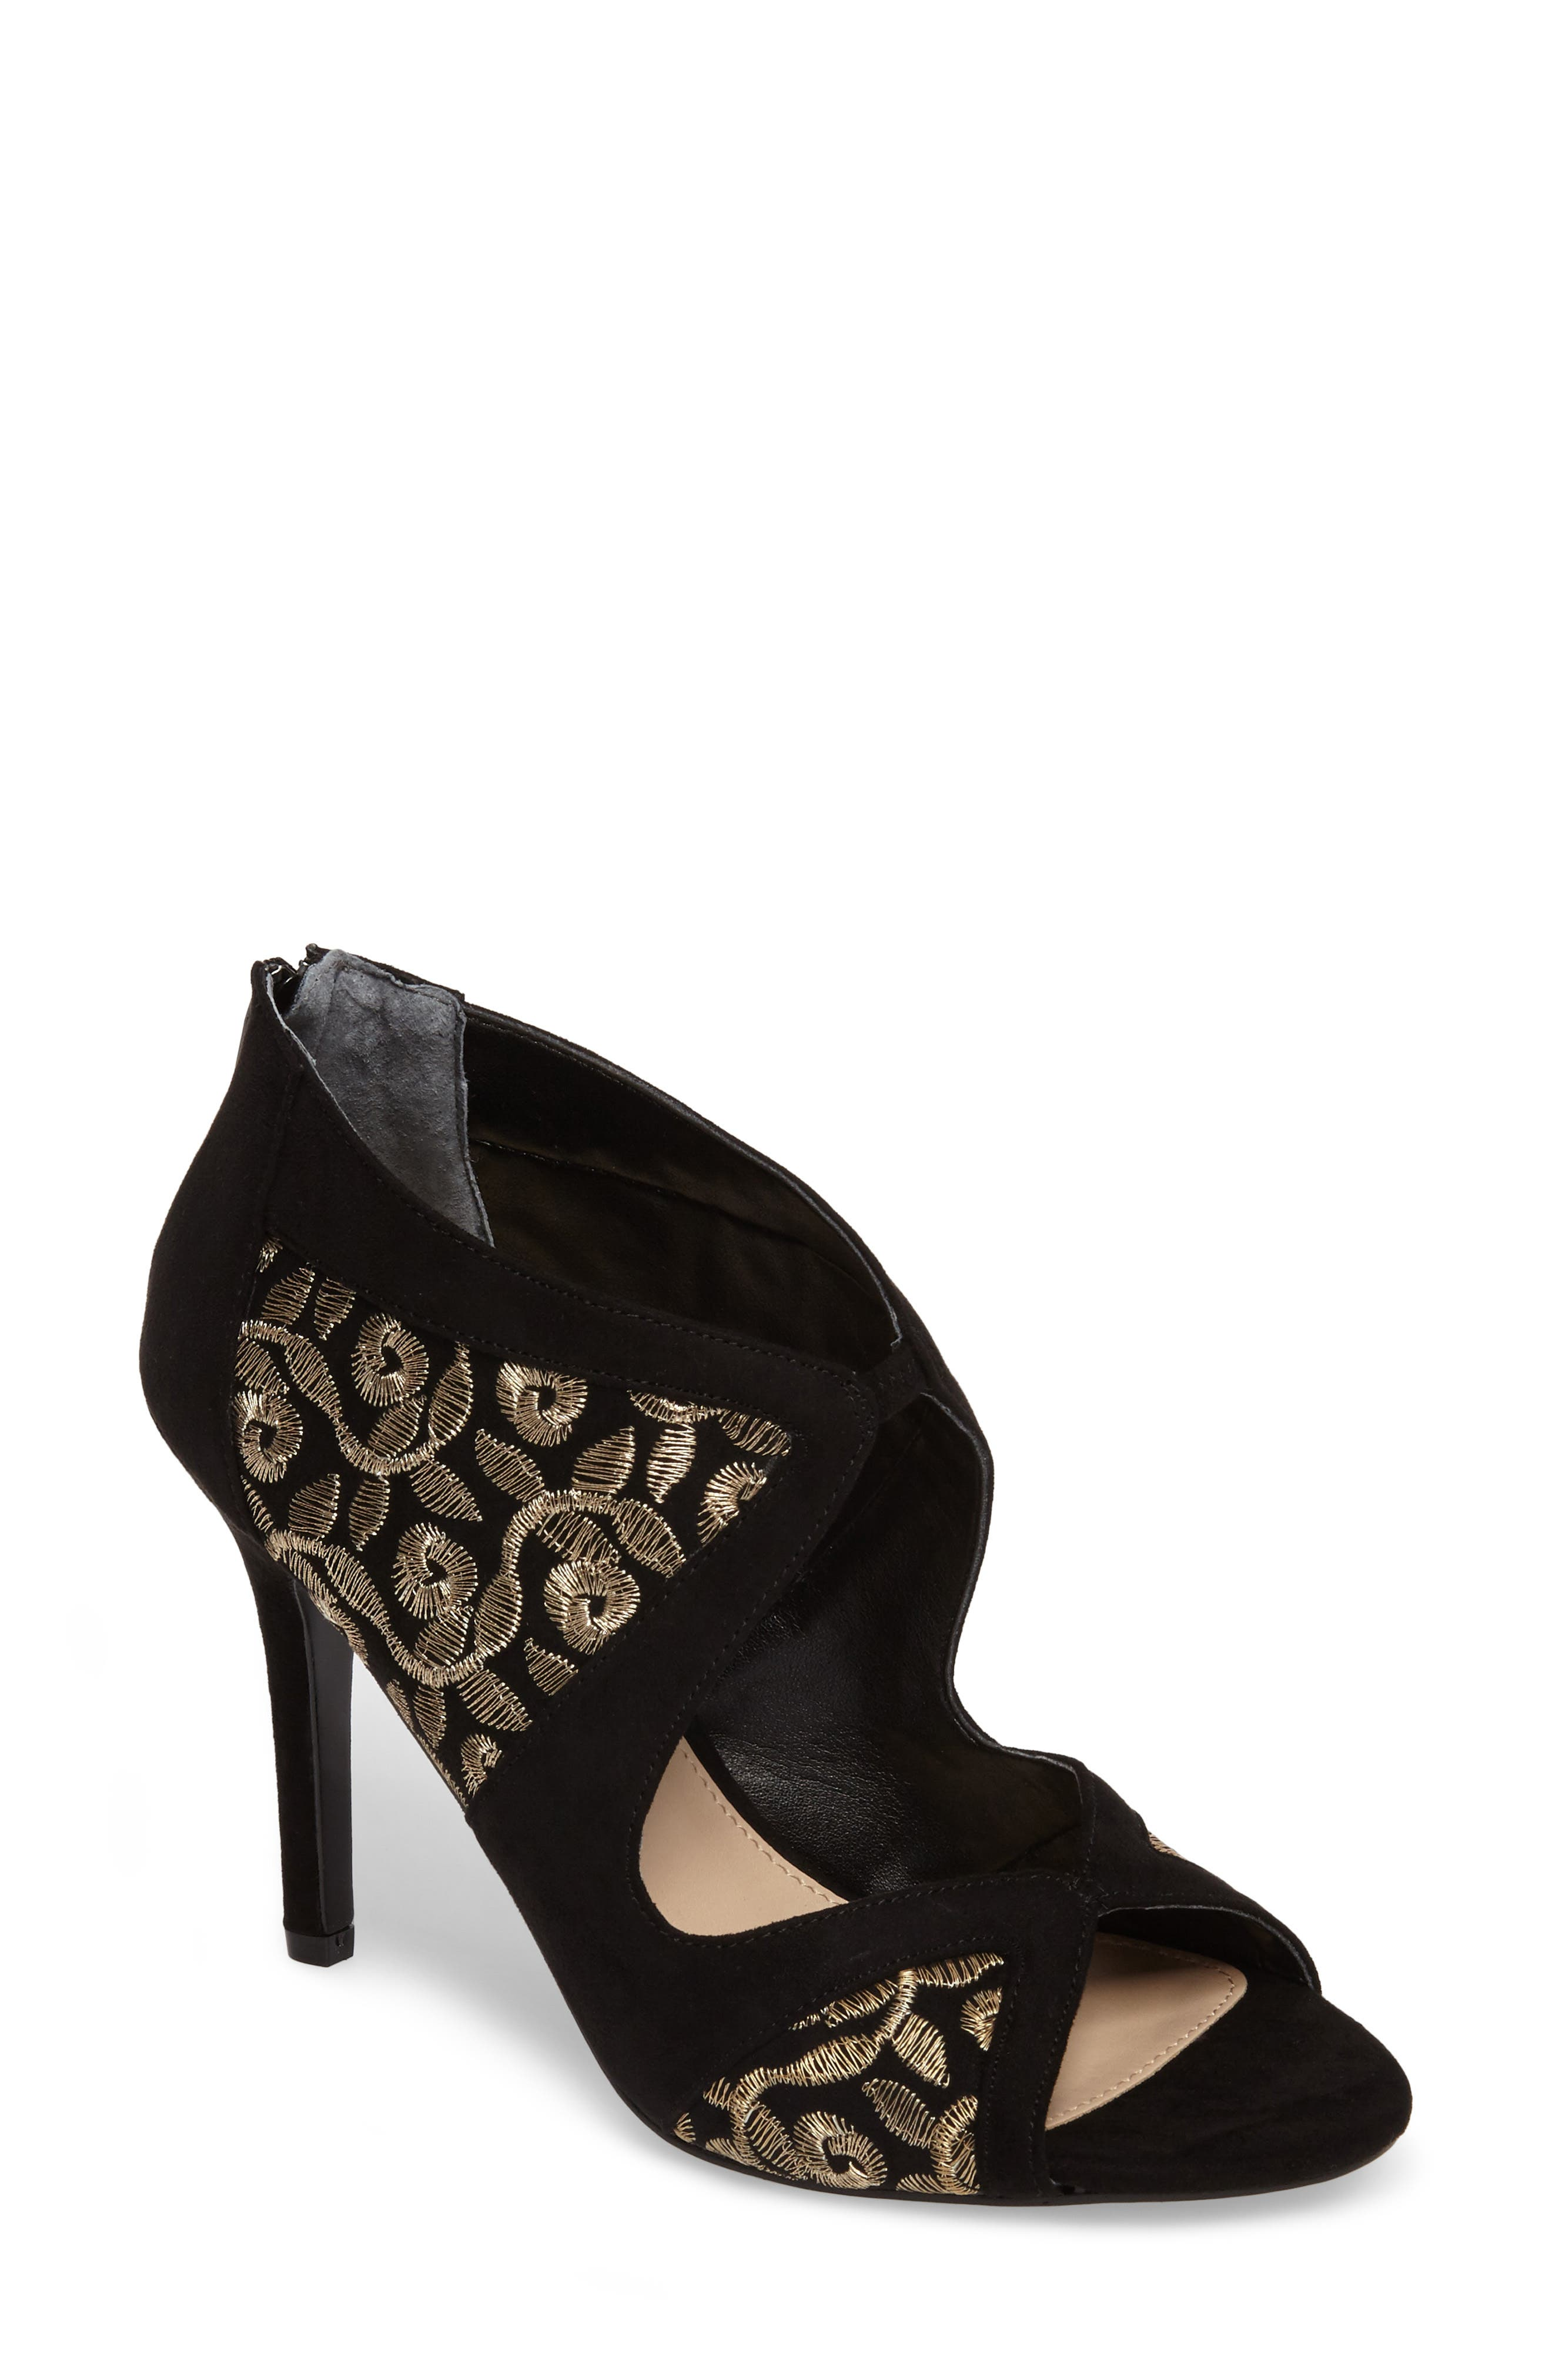 Cordella Open Toe Pump,                             Main thumbnail 1, color,                             Black/ Gold Embroidery Fabric